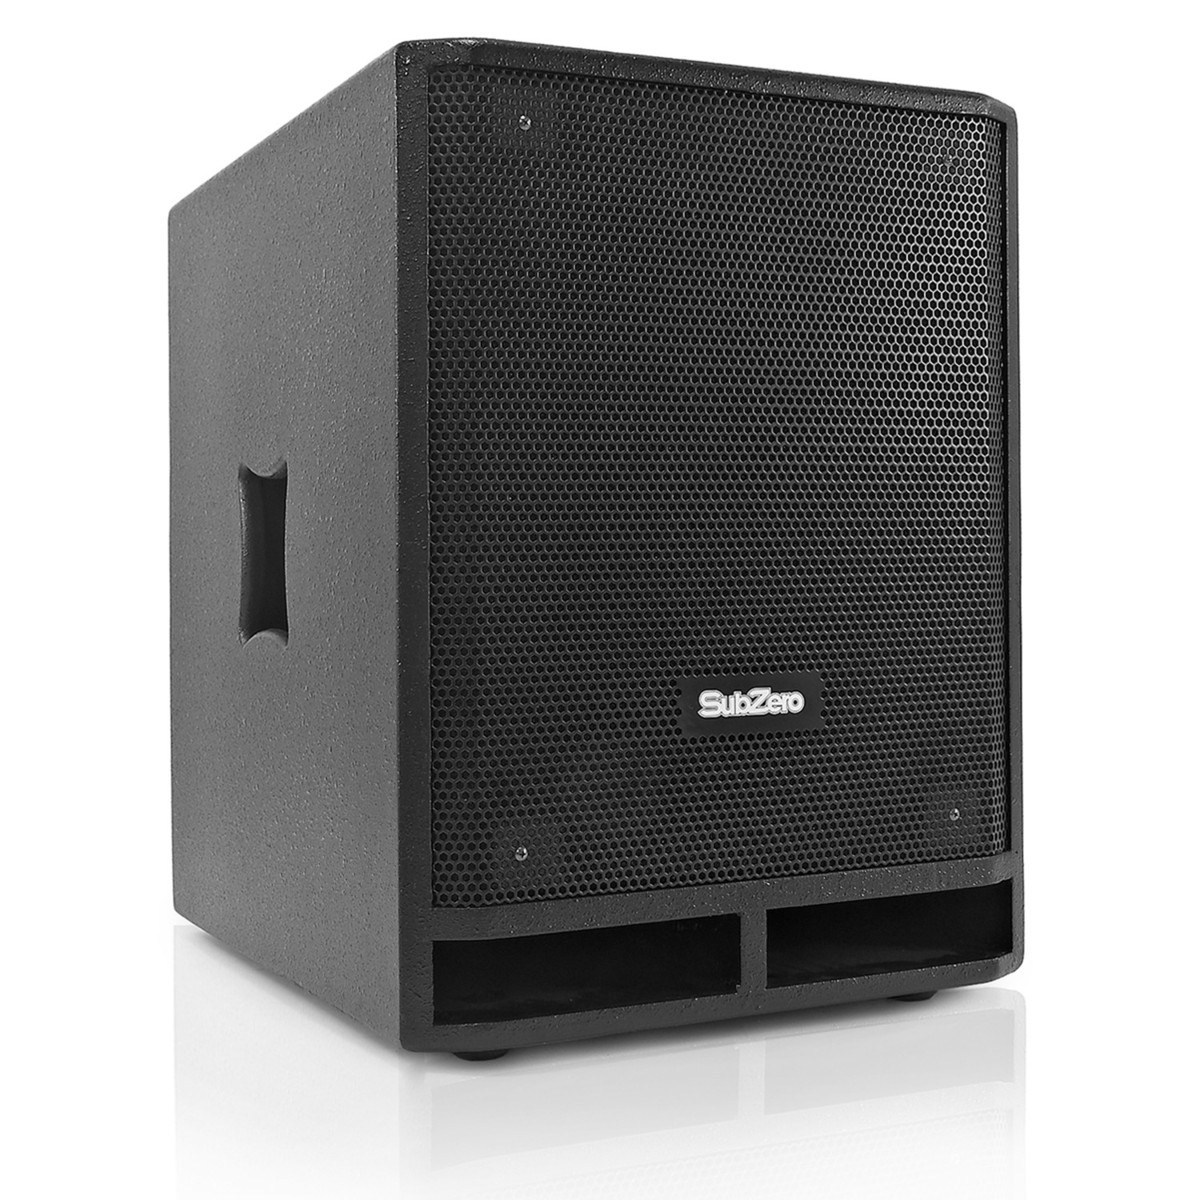 caisson de basse actif subzero 500w 15 pouces par gear4music b stock. Black Bedroom Furniture Sets. Home Design Ideas